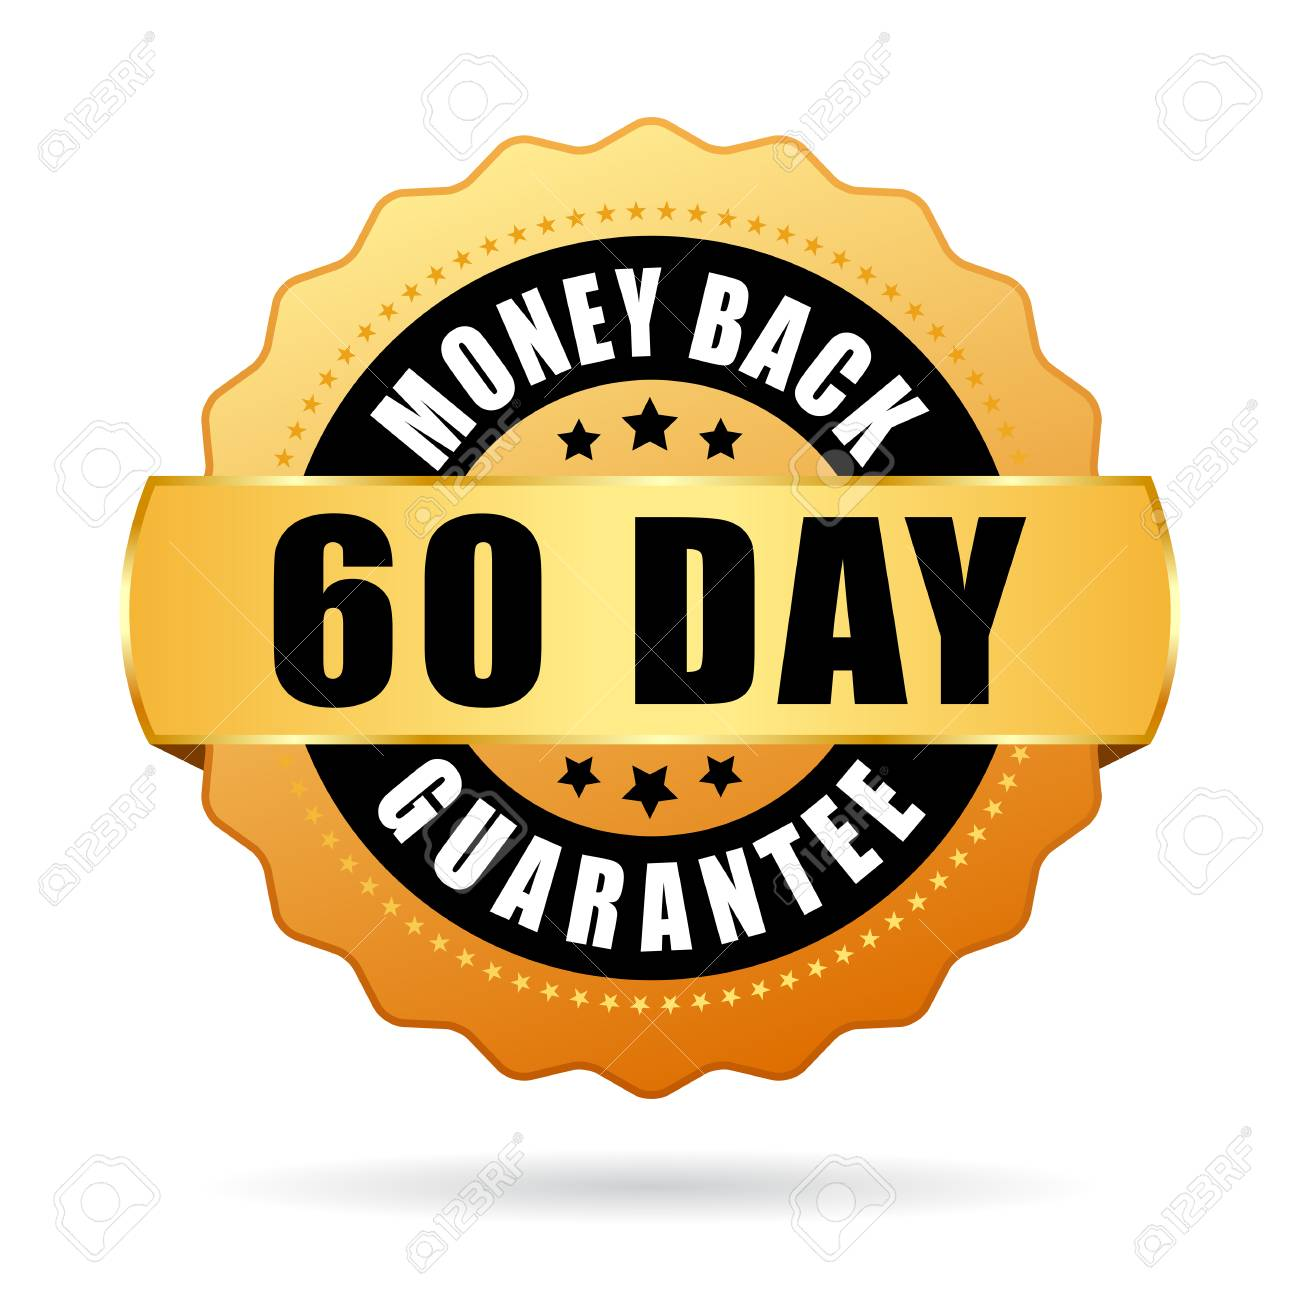 60 Day Money Back Guarantee Vector Icon Royalty Free Cliparts, Vectors, And  Stock Illustration. Image 98713810.